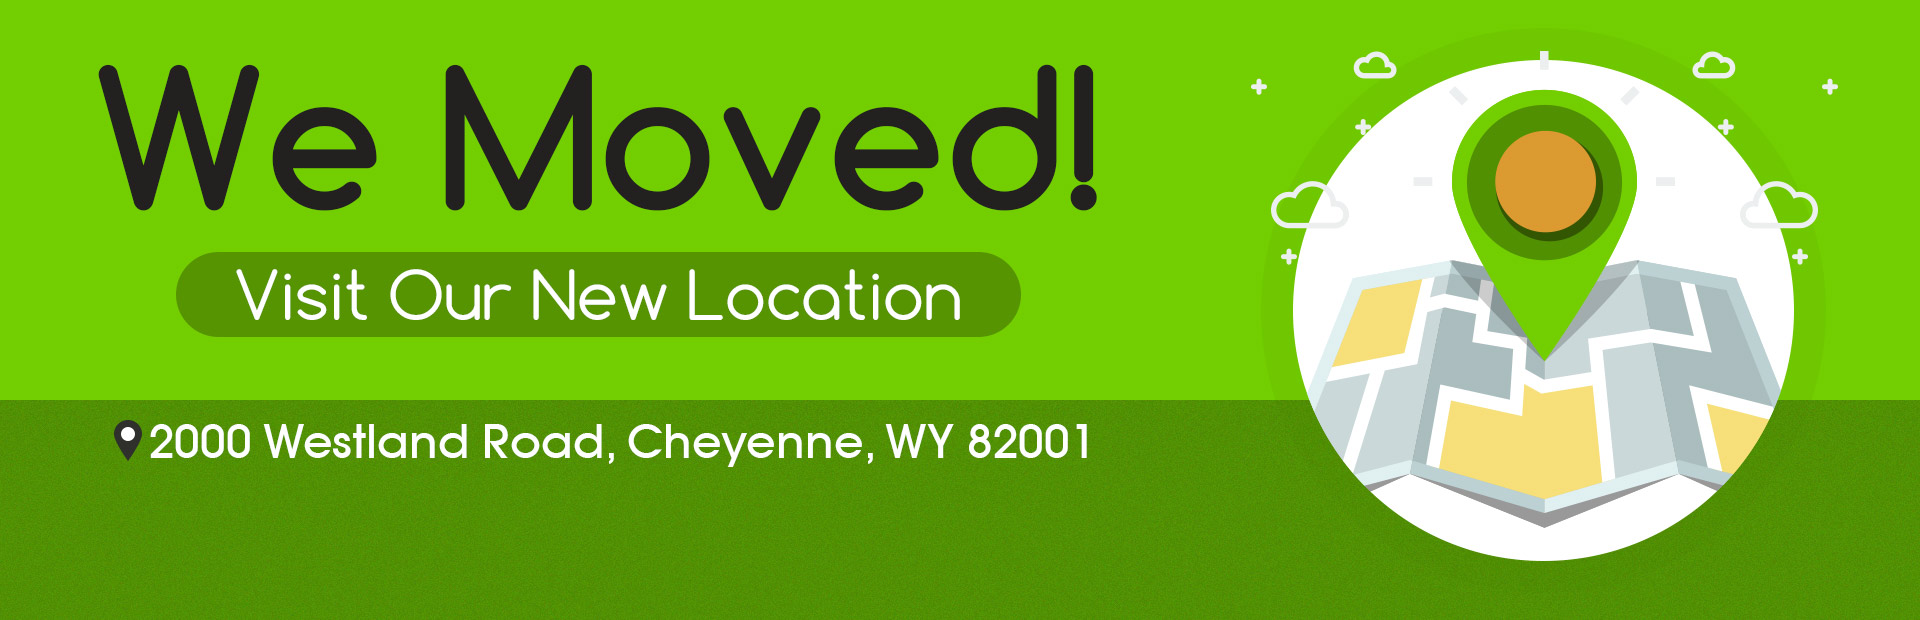 We moved! Visit our new location at 2000 Westland Road in Cheyenne, WY 82001.